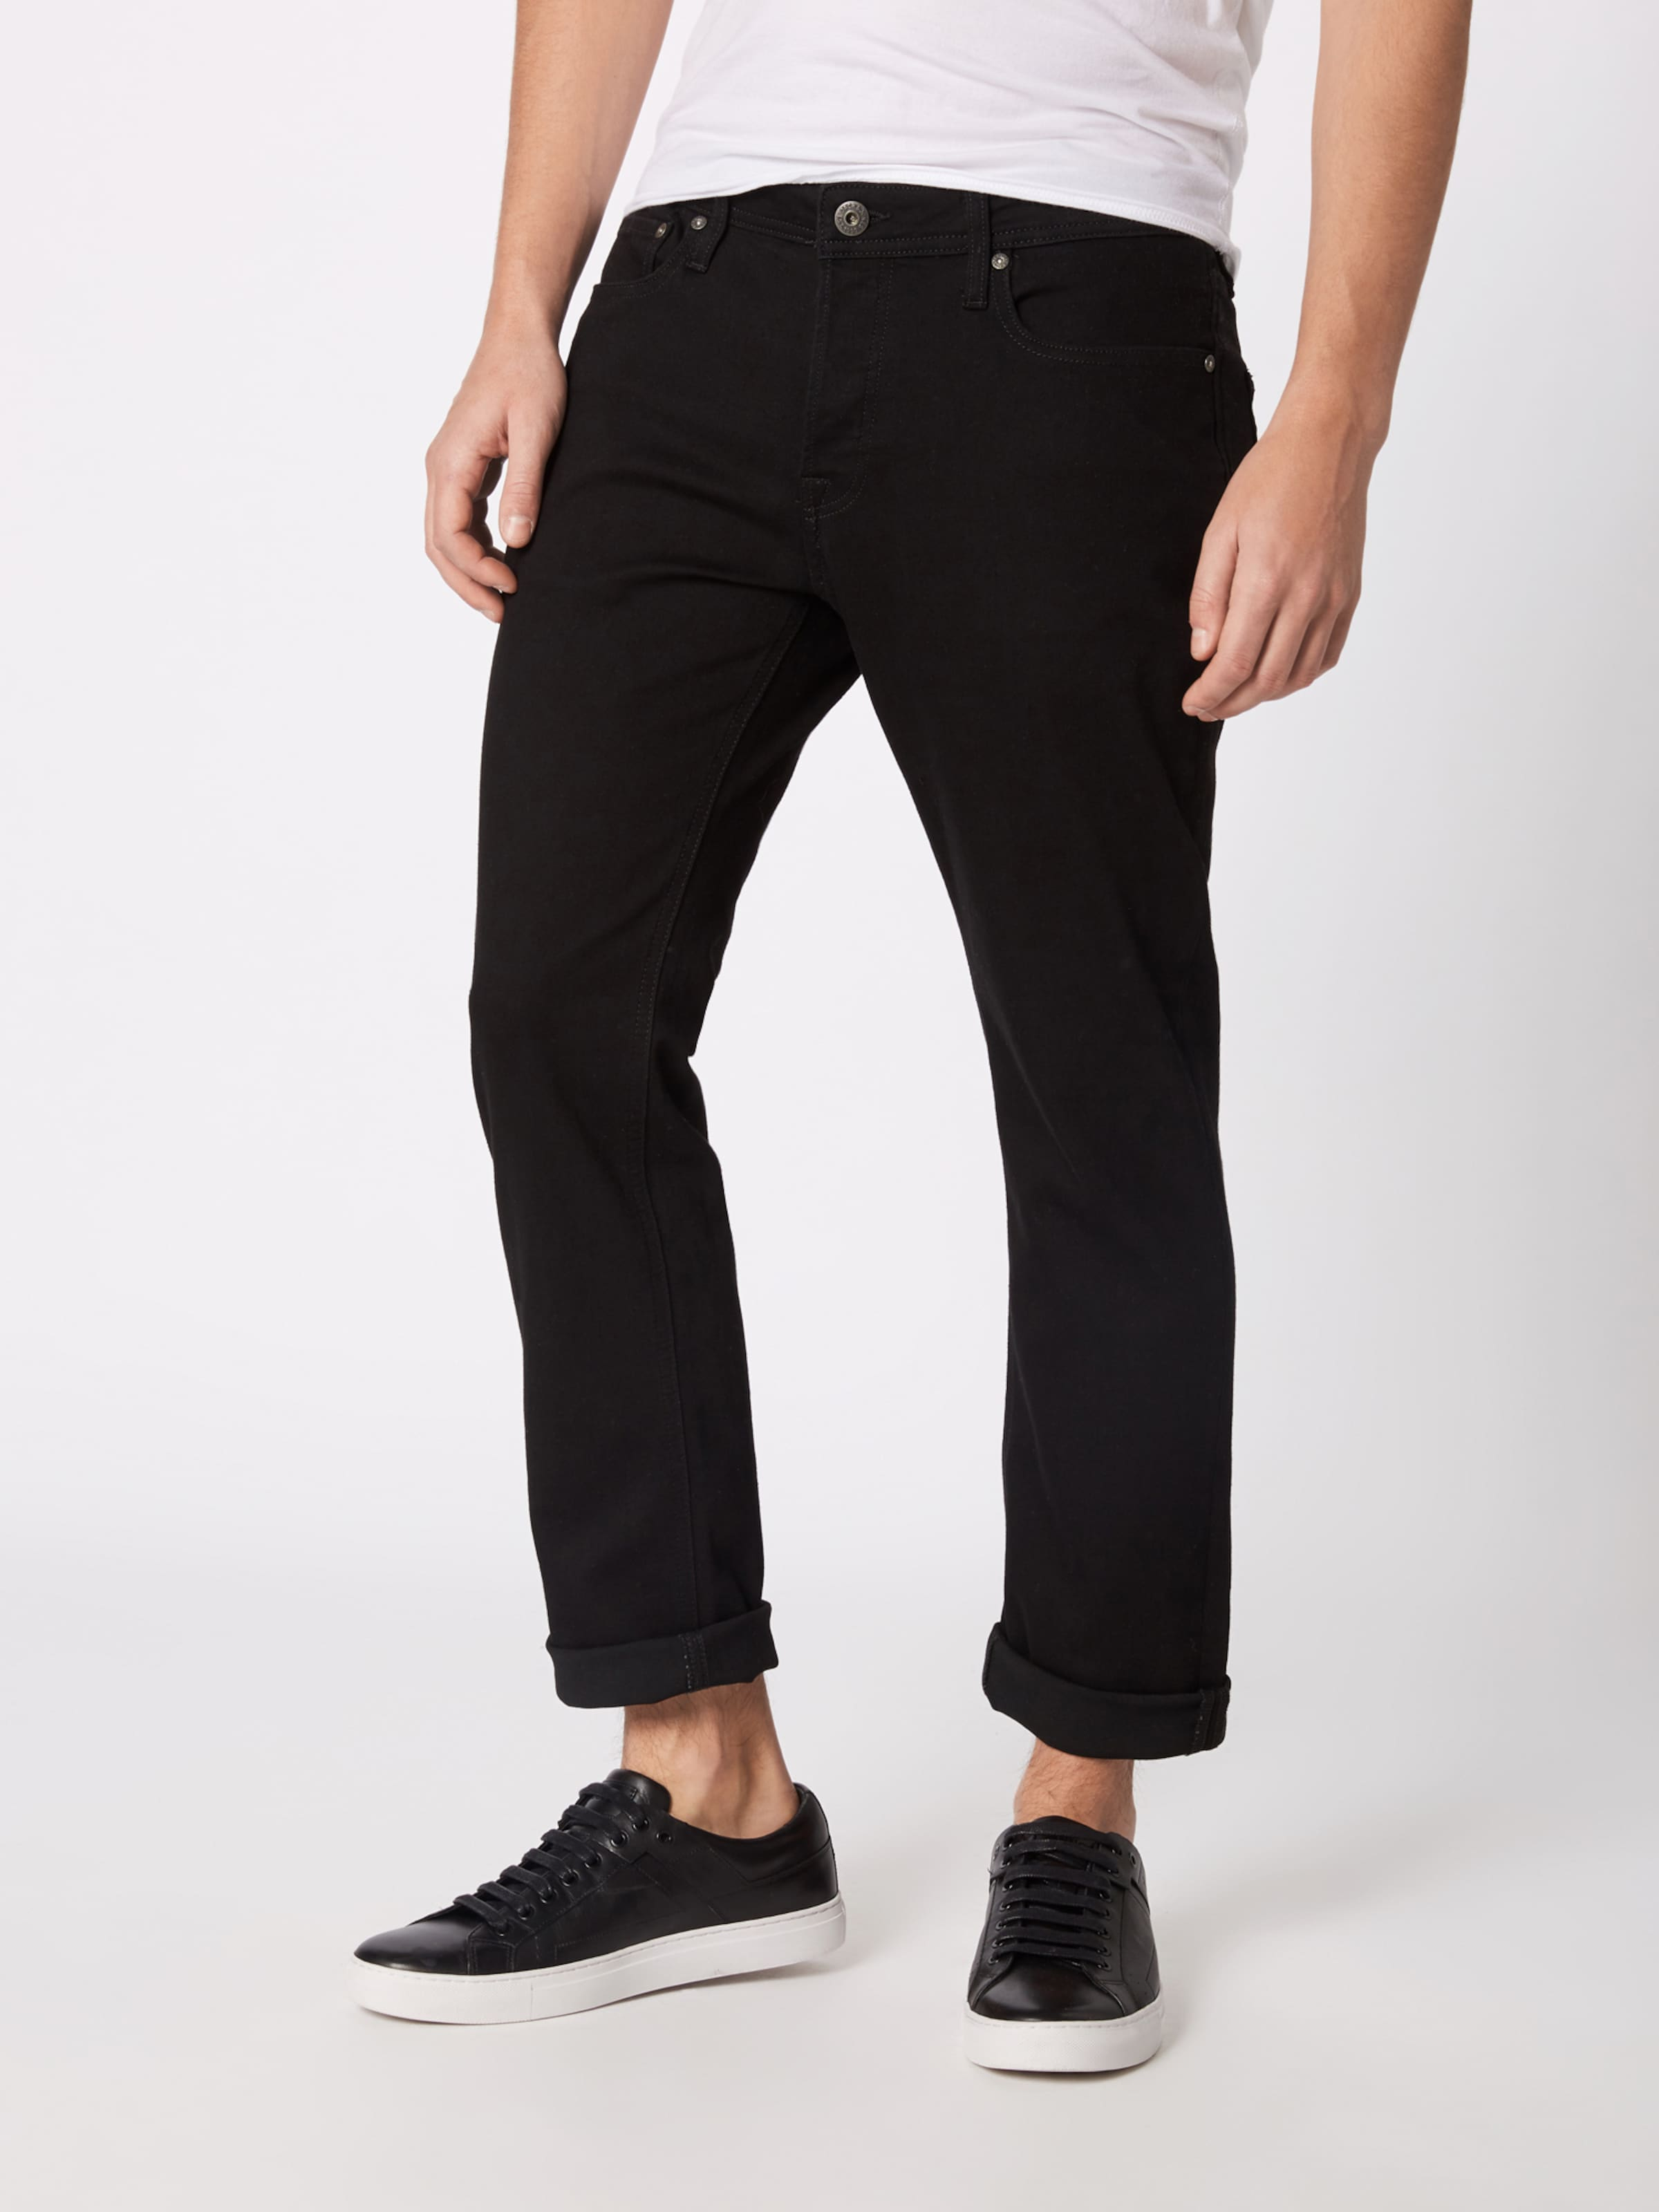 Denim Am En Jackamp; Jean 816' Noir Jones 'itim Original UzMVSp